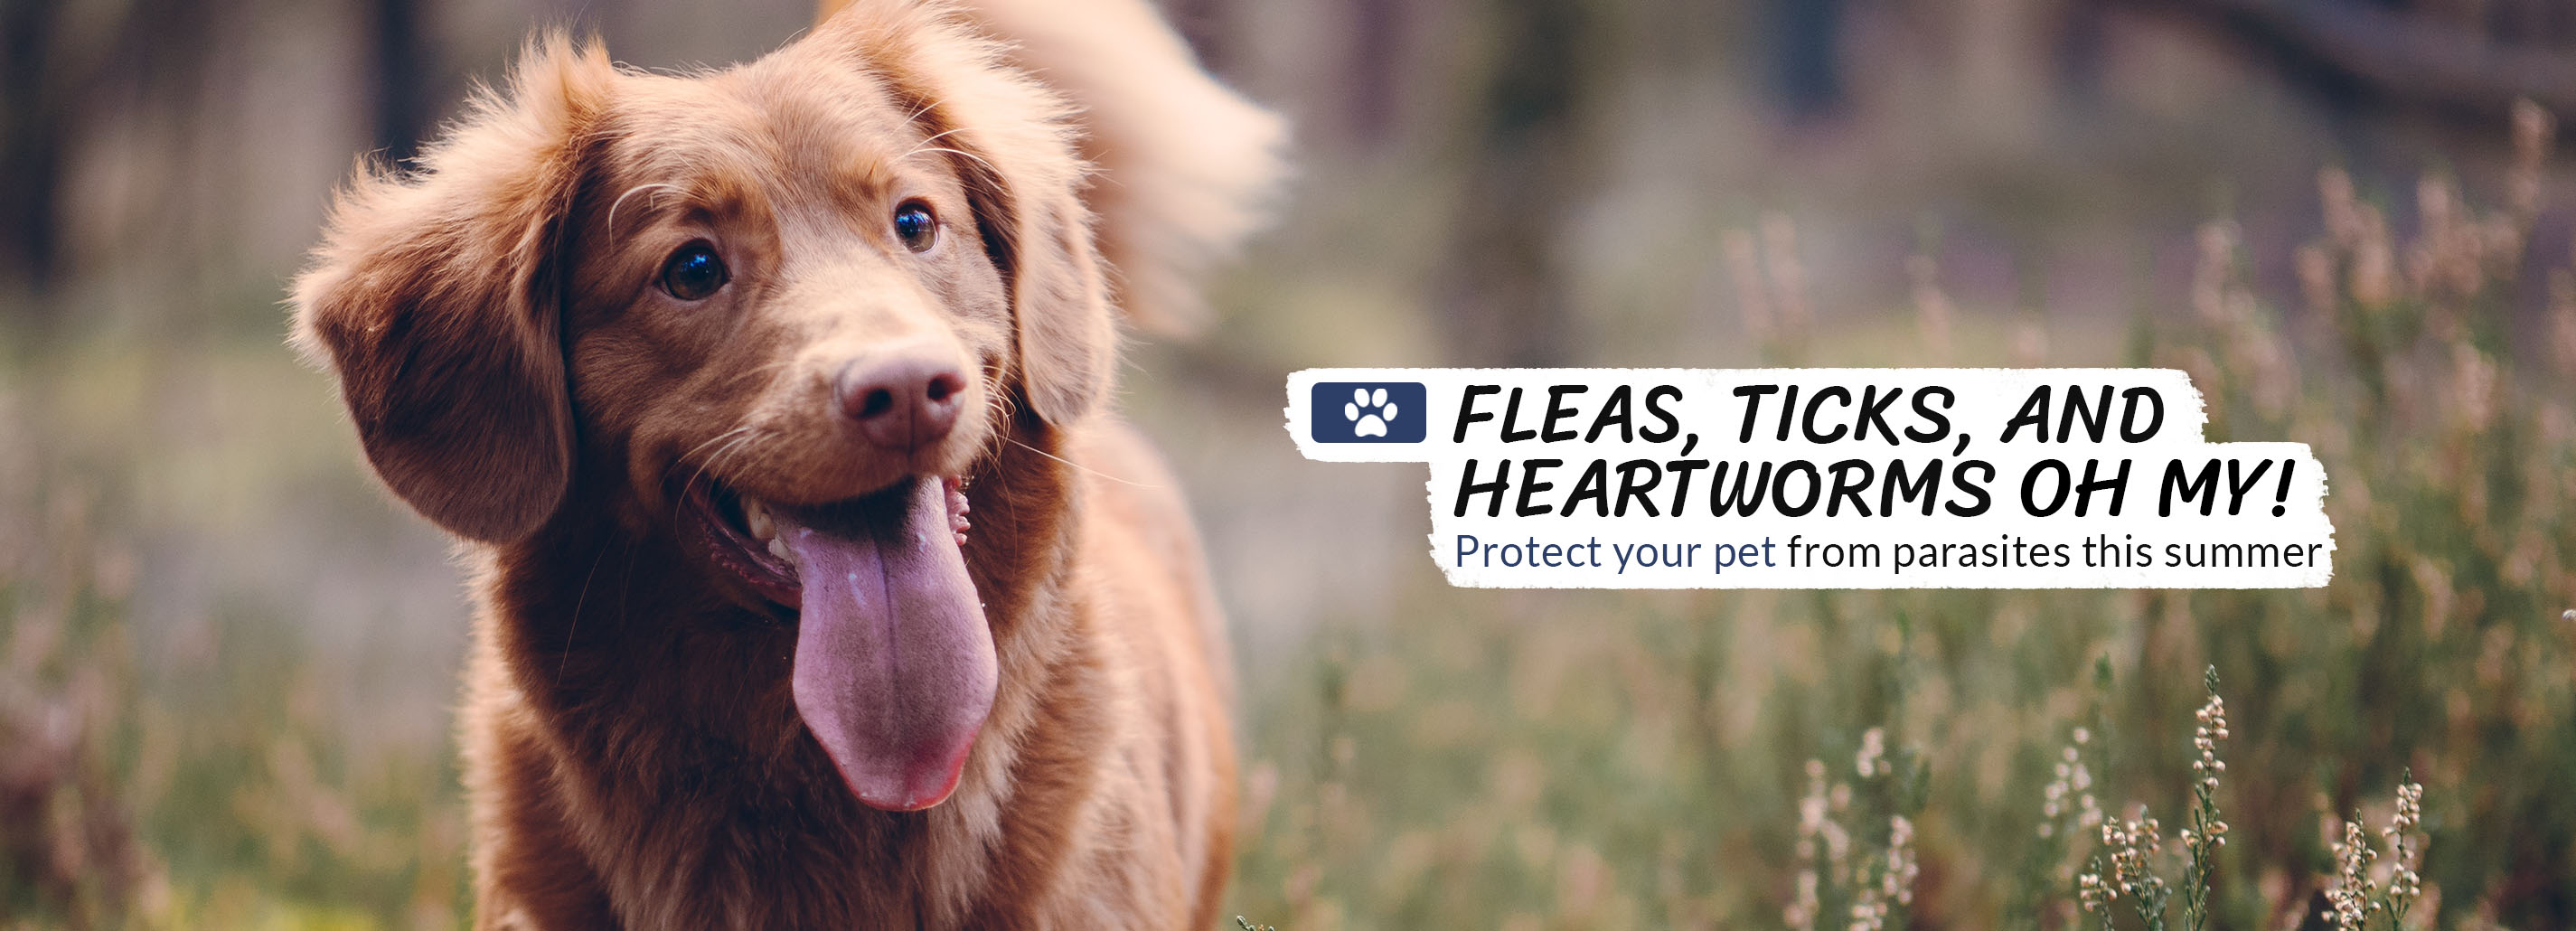 Fleas, Ticks and Heartworms Oh My